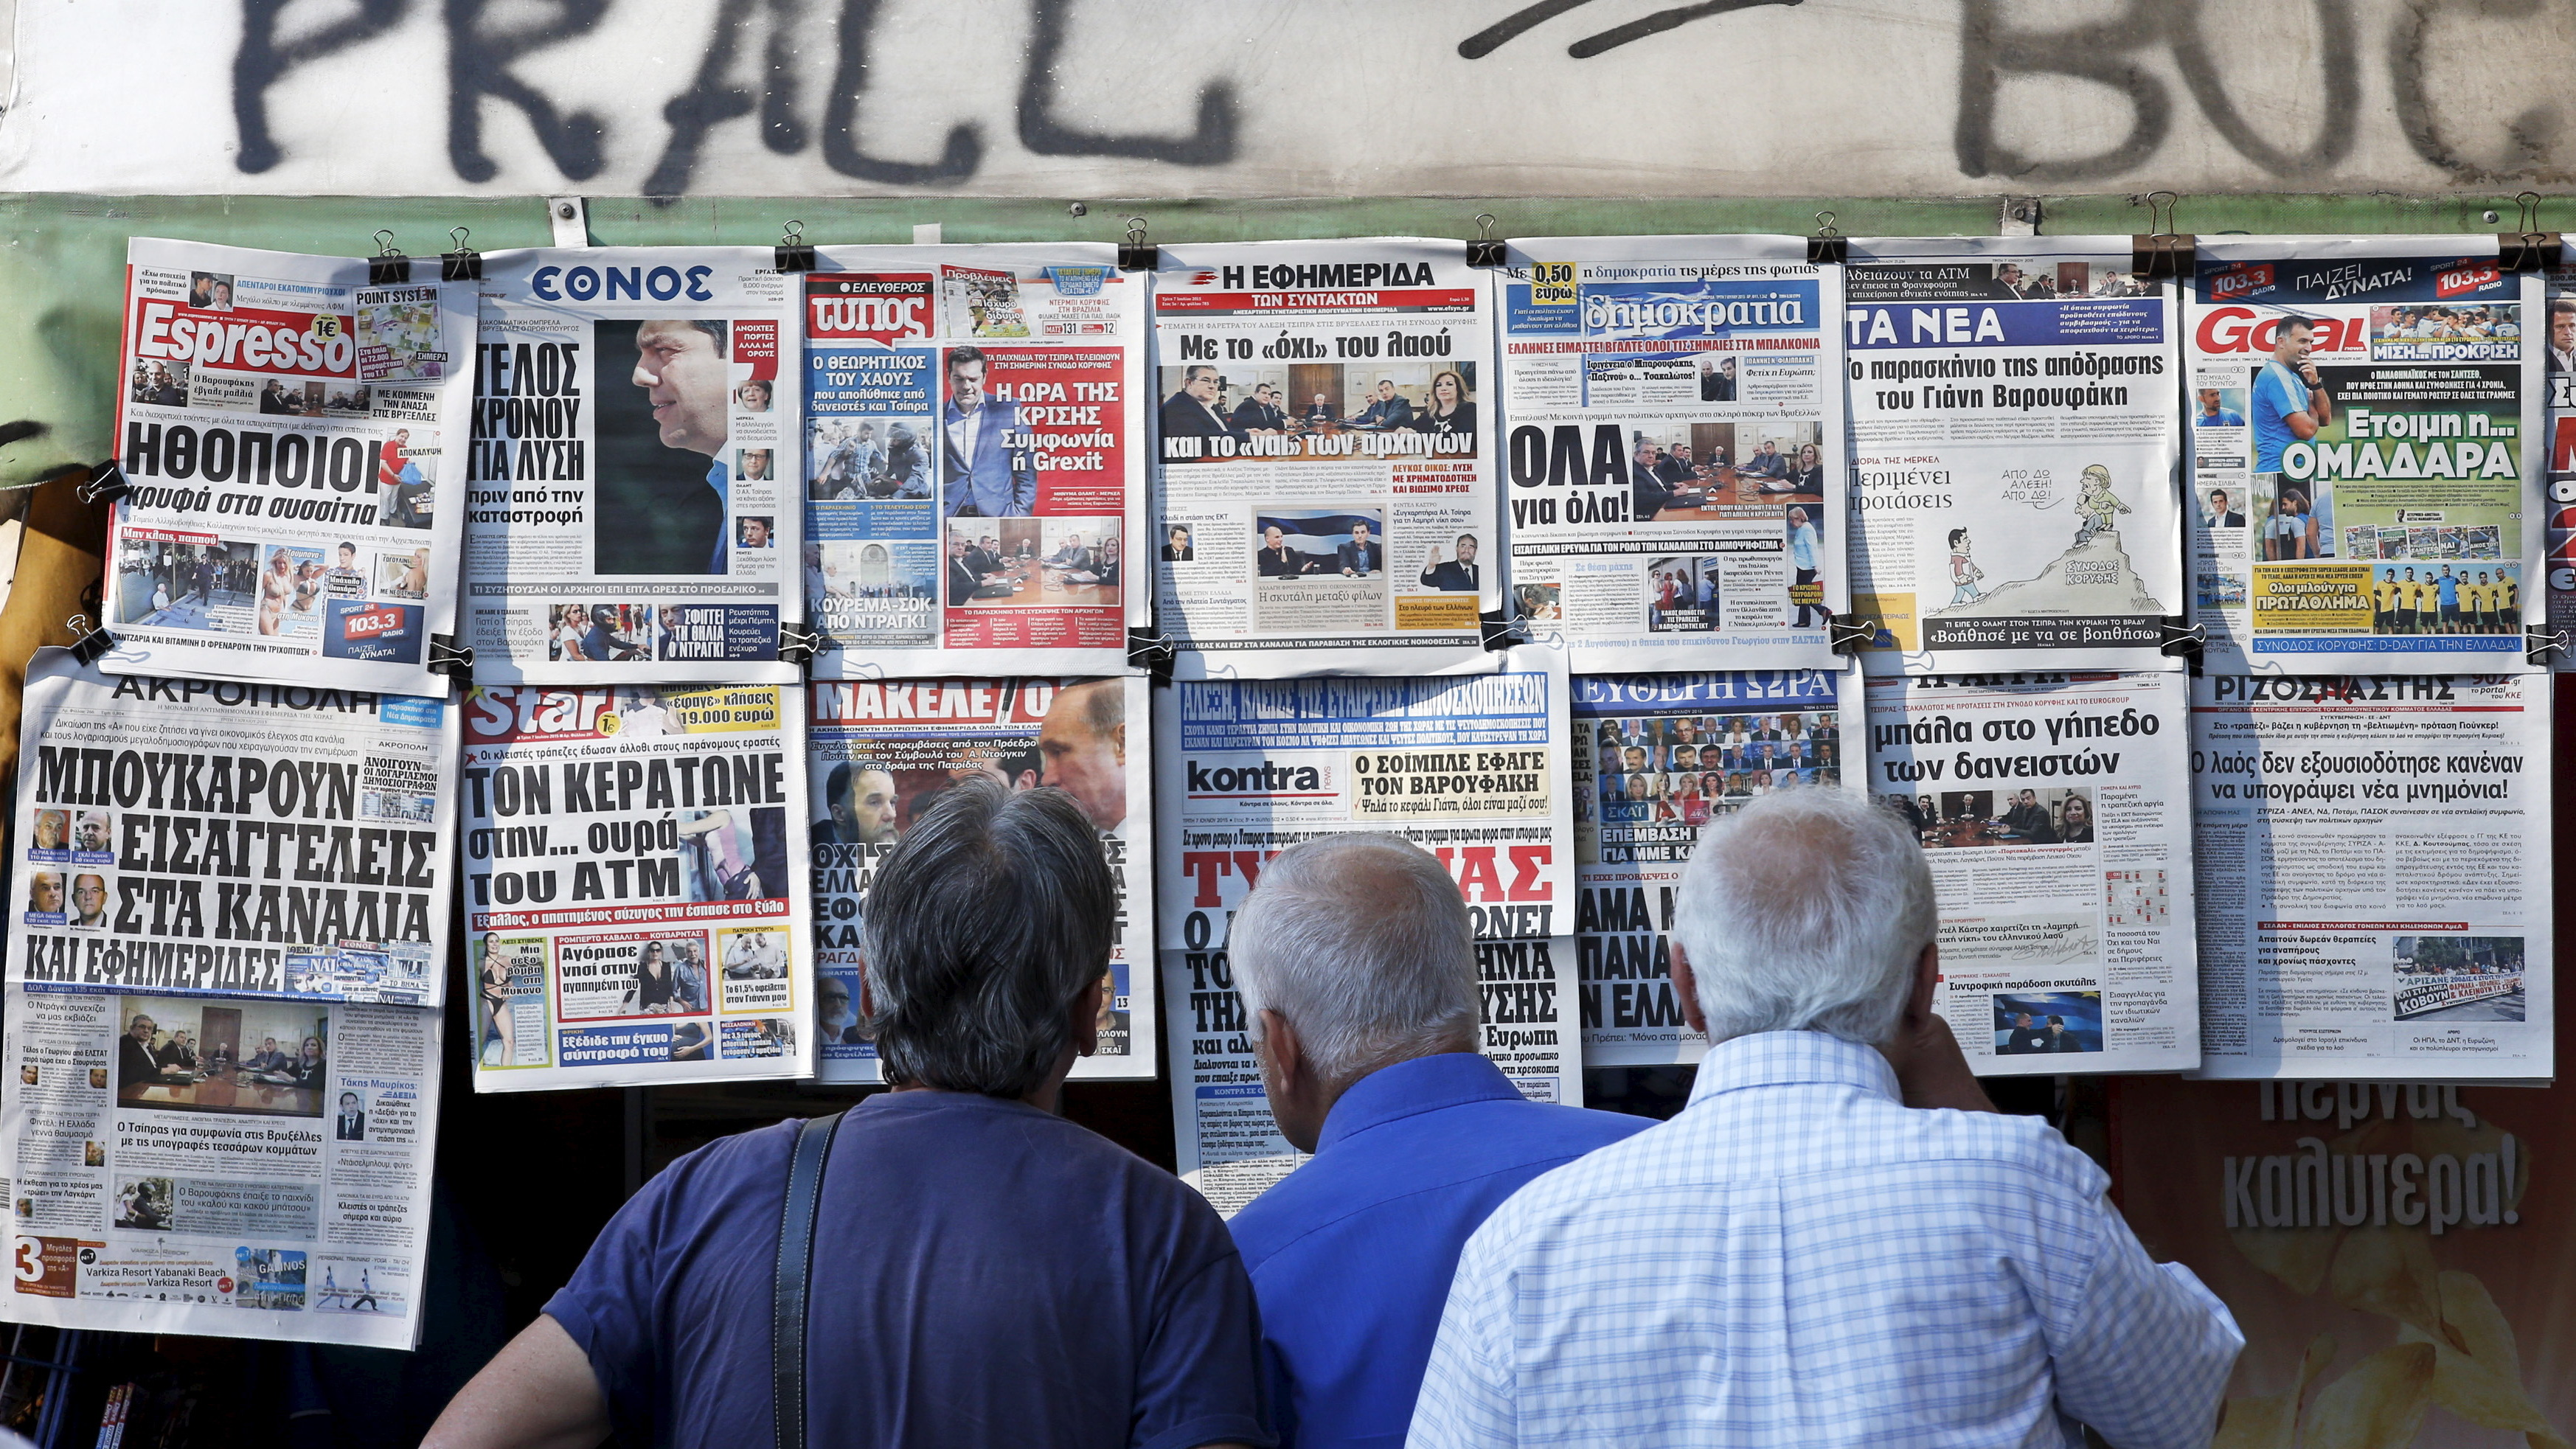 As Government Hunts For A Solution, Greeks Anticipate Catastrophe